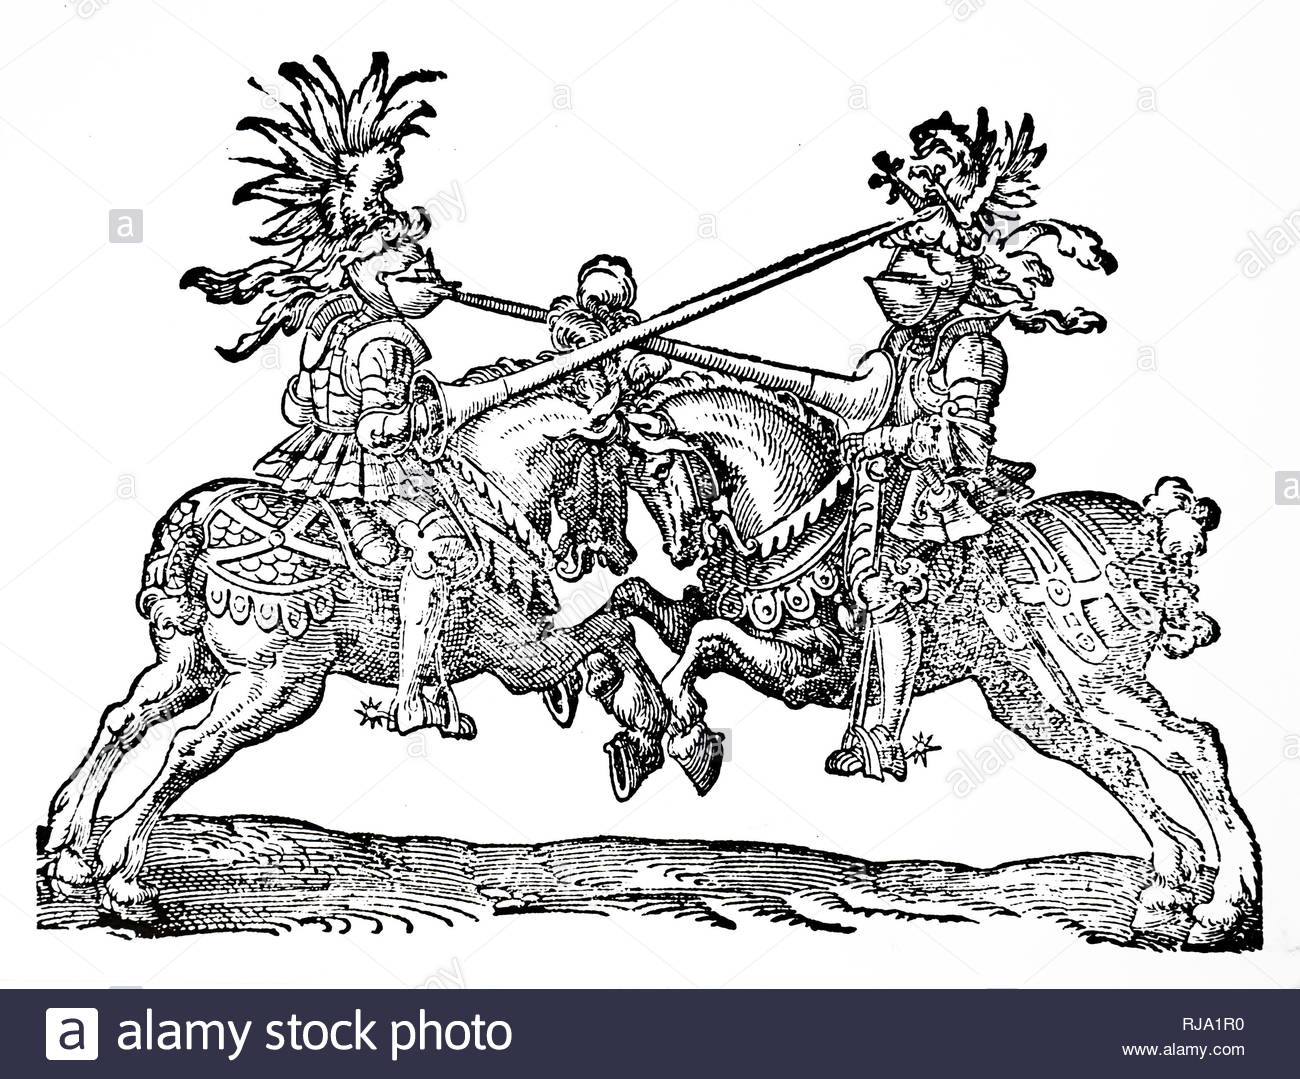 Woodcut print depicting knights jousting at a tournament. Print by Jost Amman (1539-1591) a Swiss-German artist, celebrated chiefly for his woodcuts, done mainly for book illustrations. Dated 16th century - Stock Image